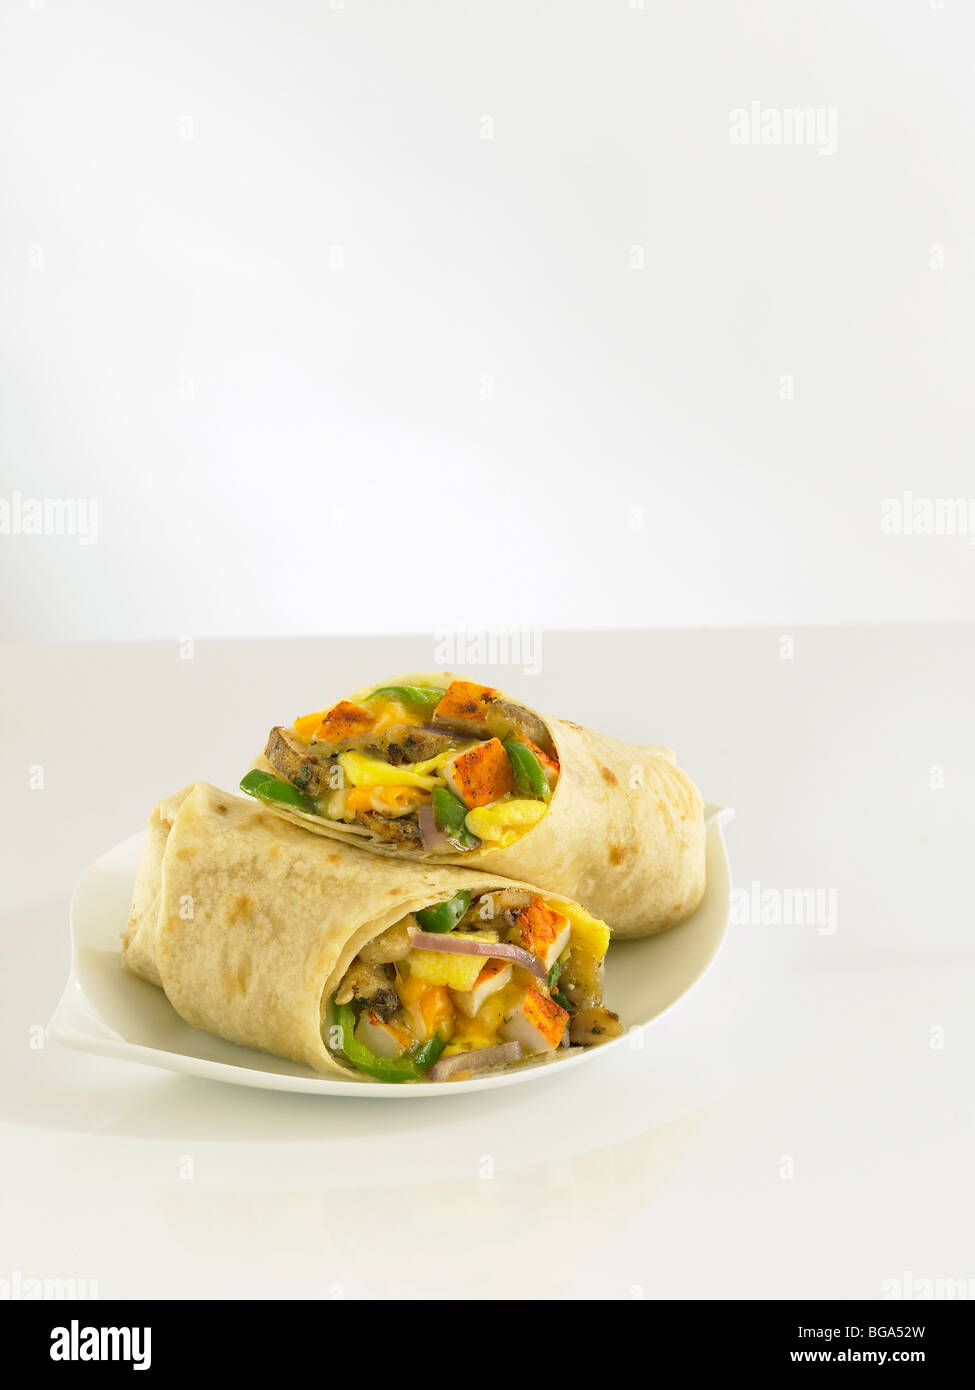 Grilled chicken and egg breakfast burrito - Stock Image